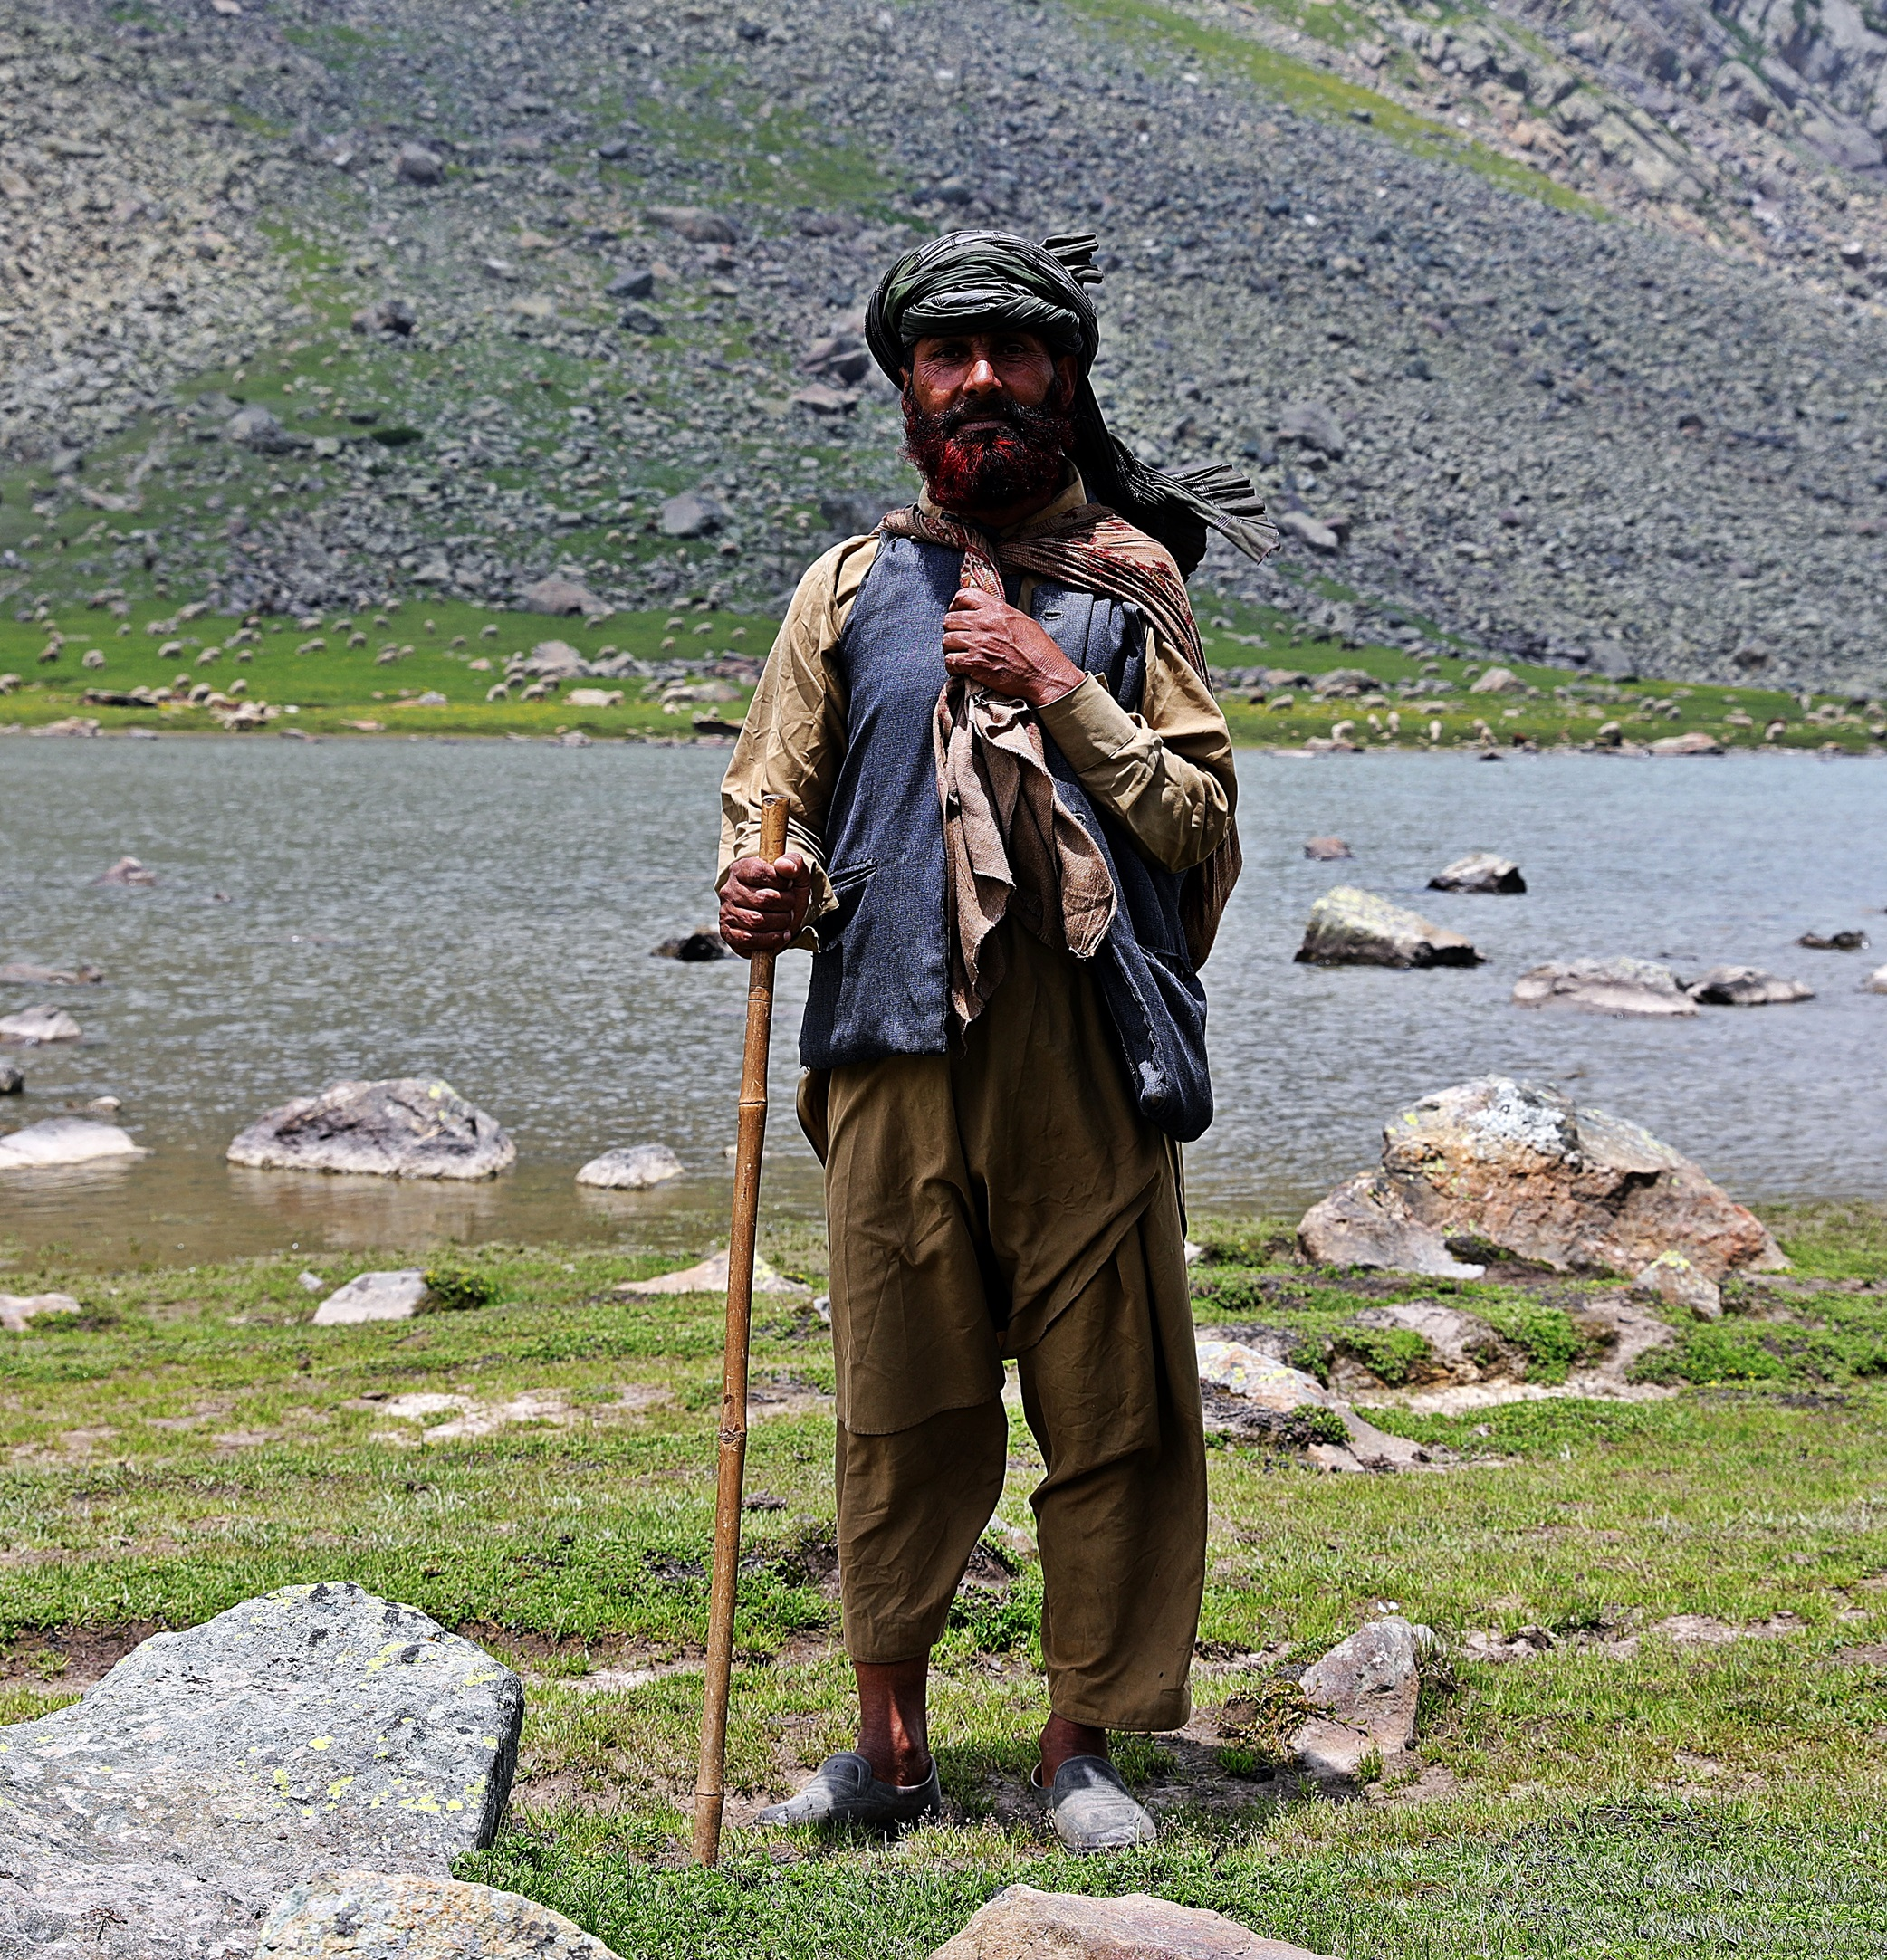 Kashmiri shepherd on the Great Lakes Trek